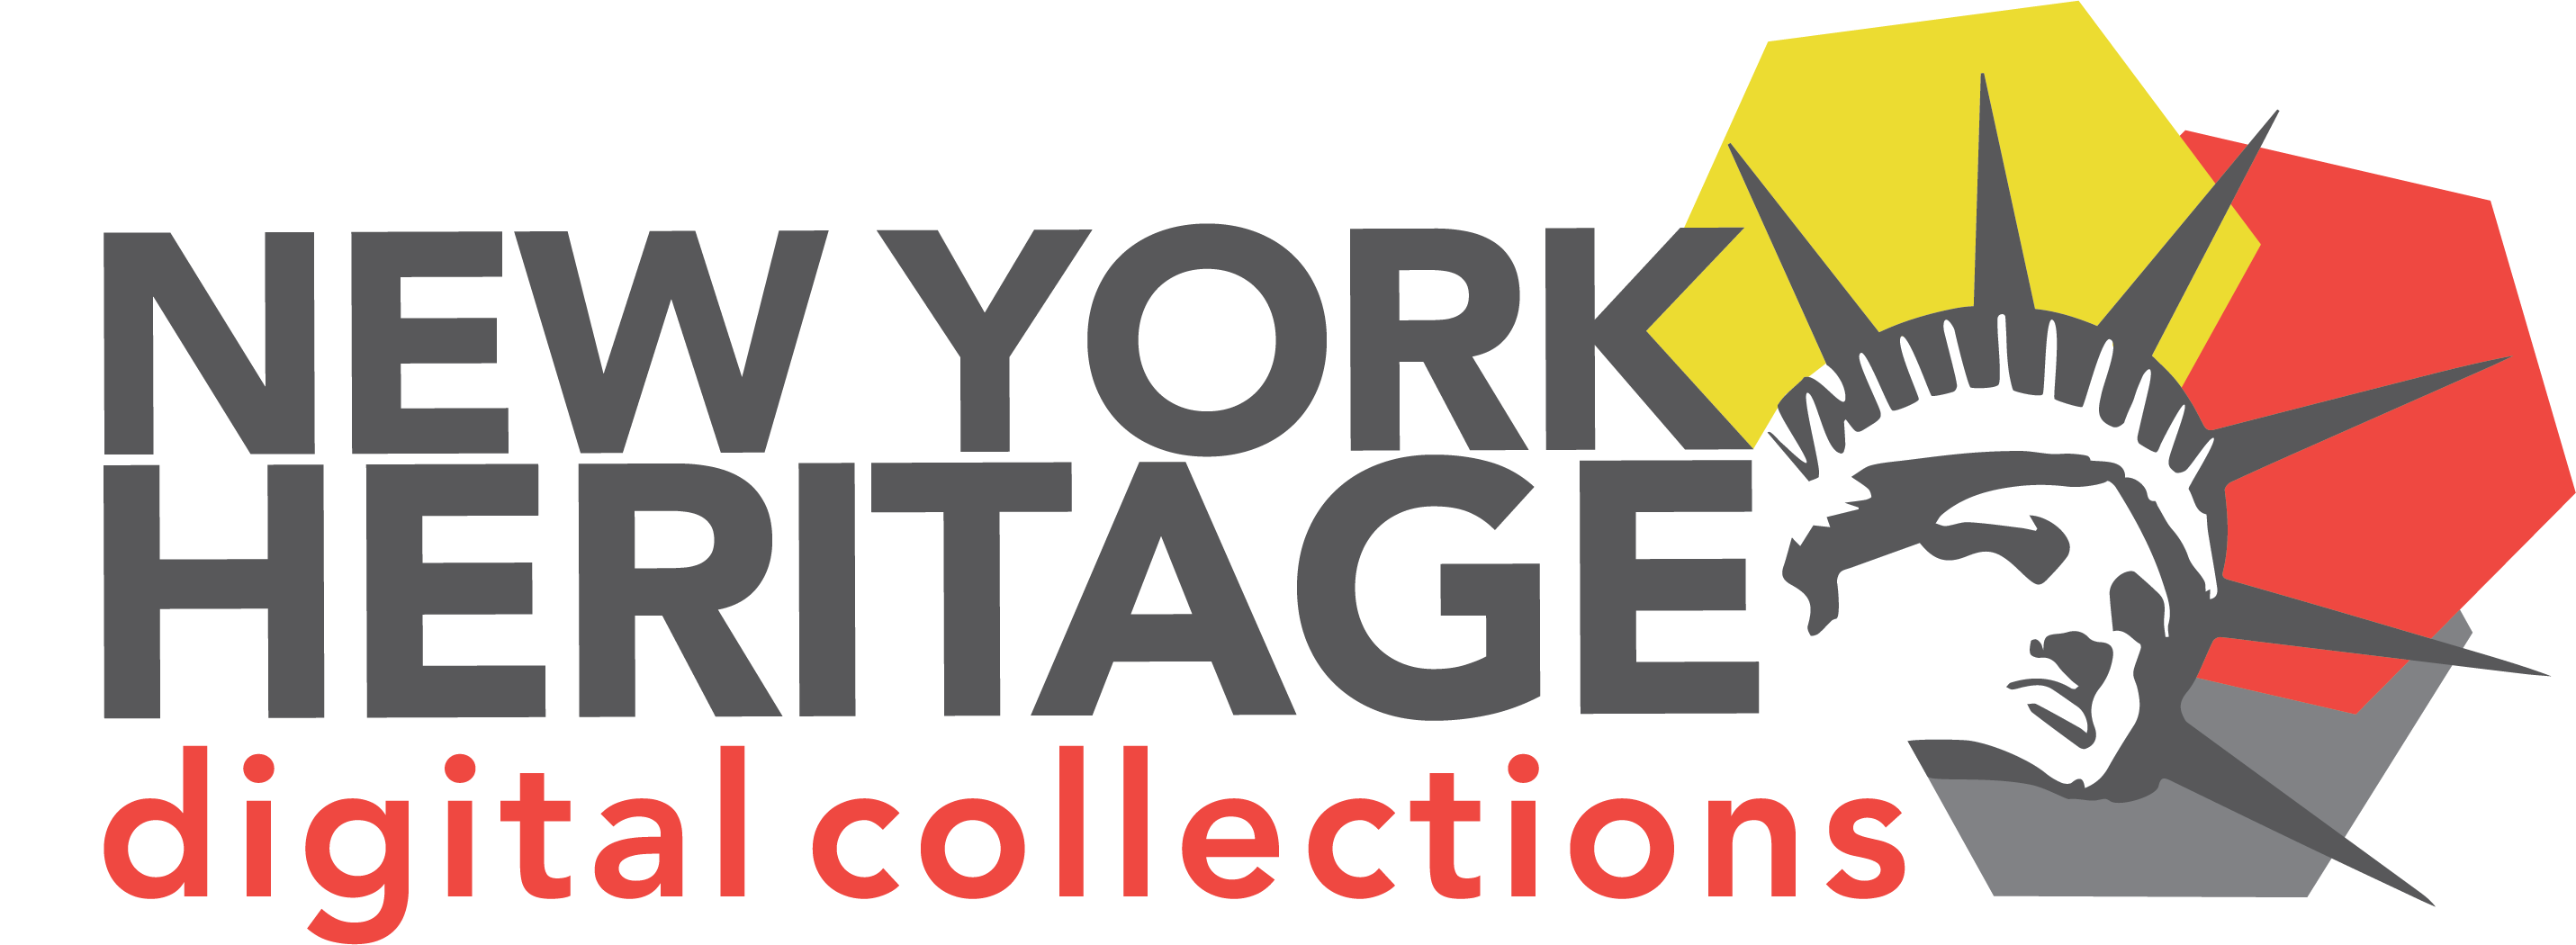 New York Heritage Logo